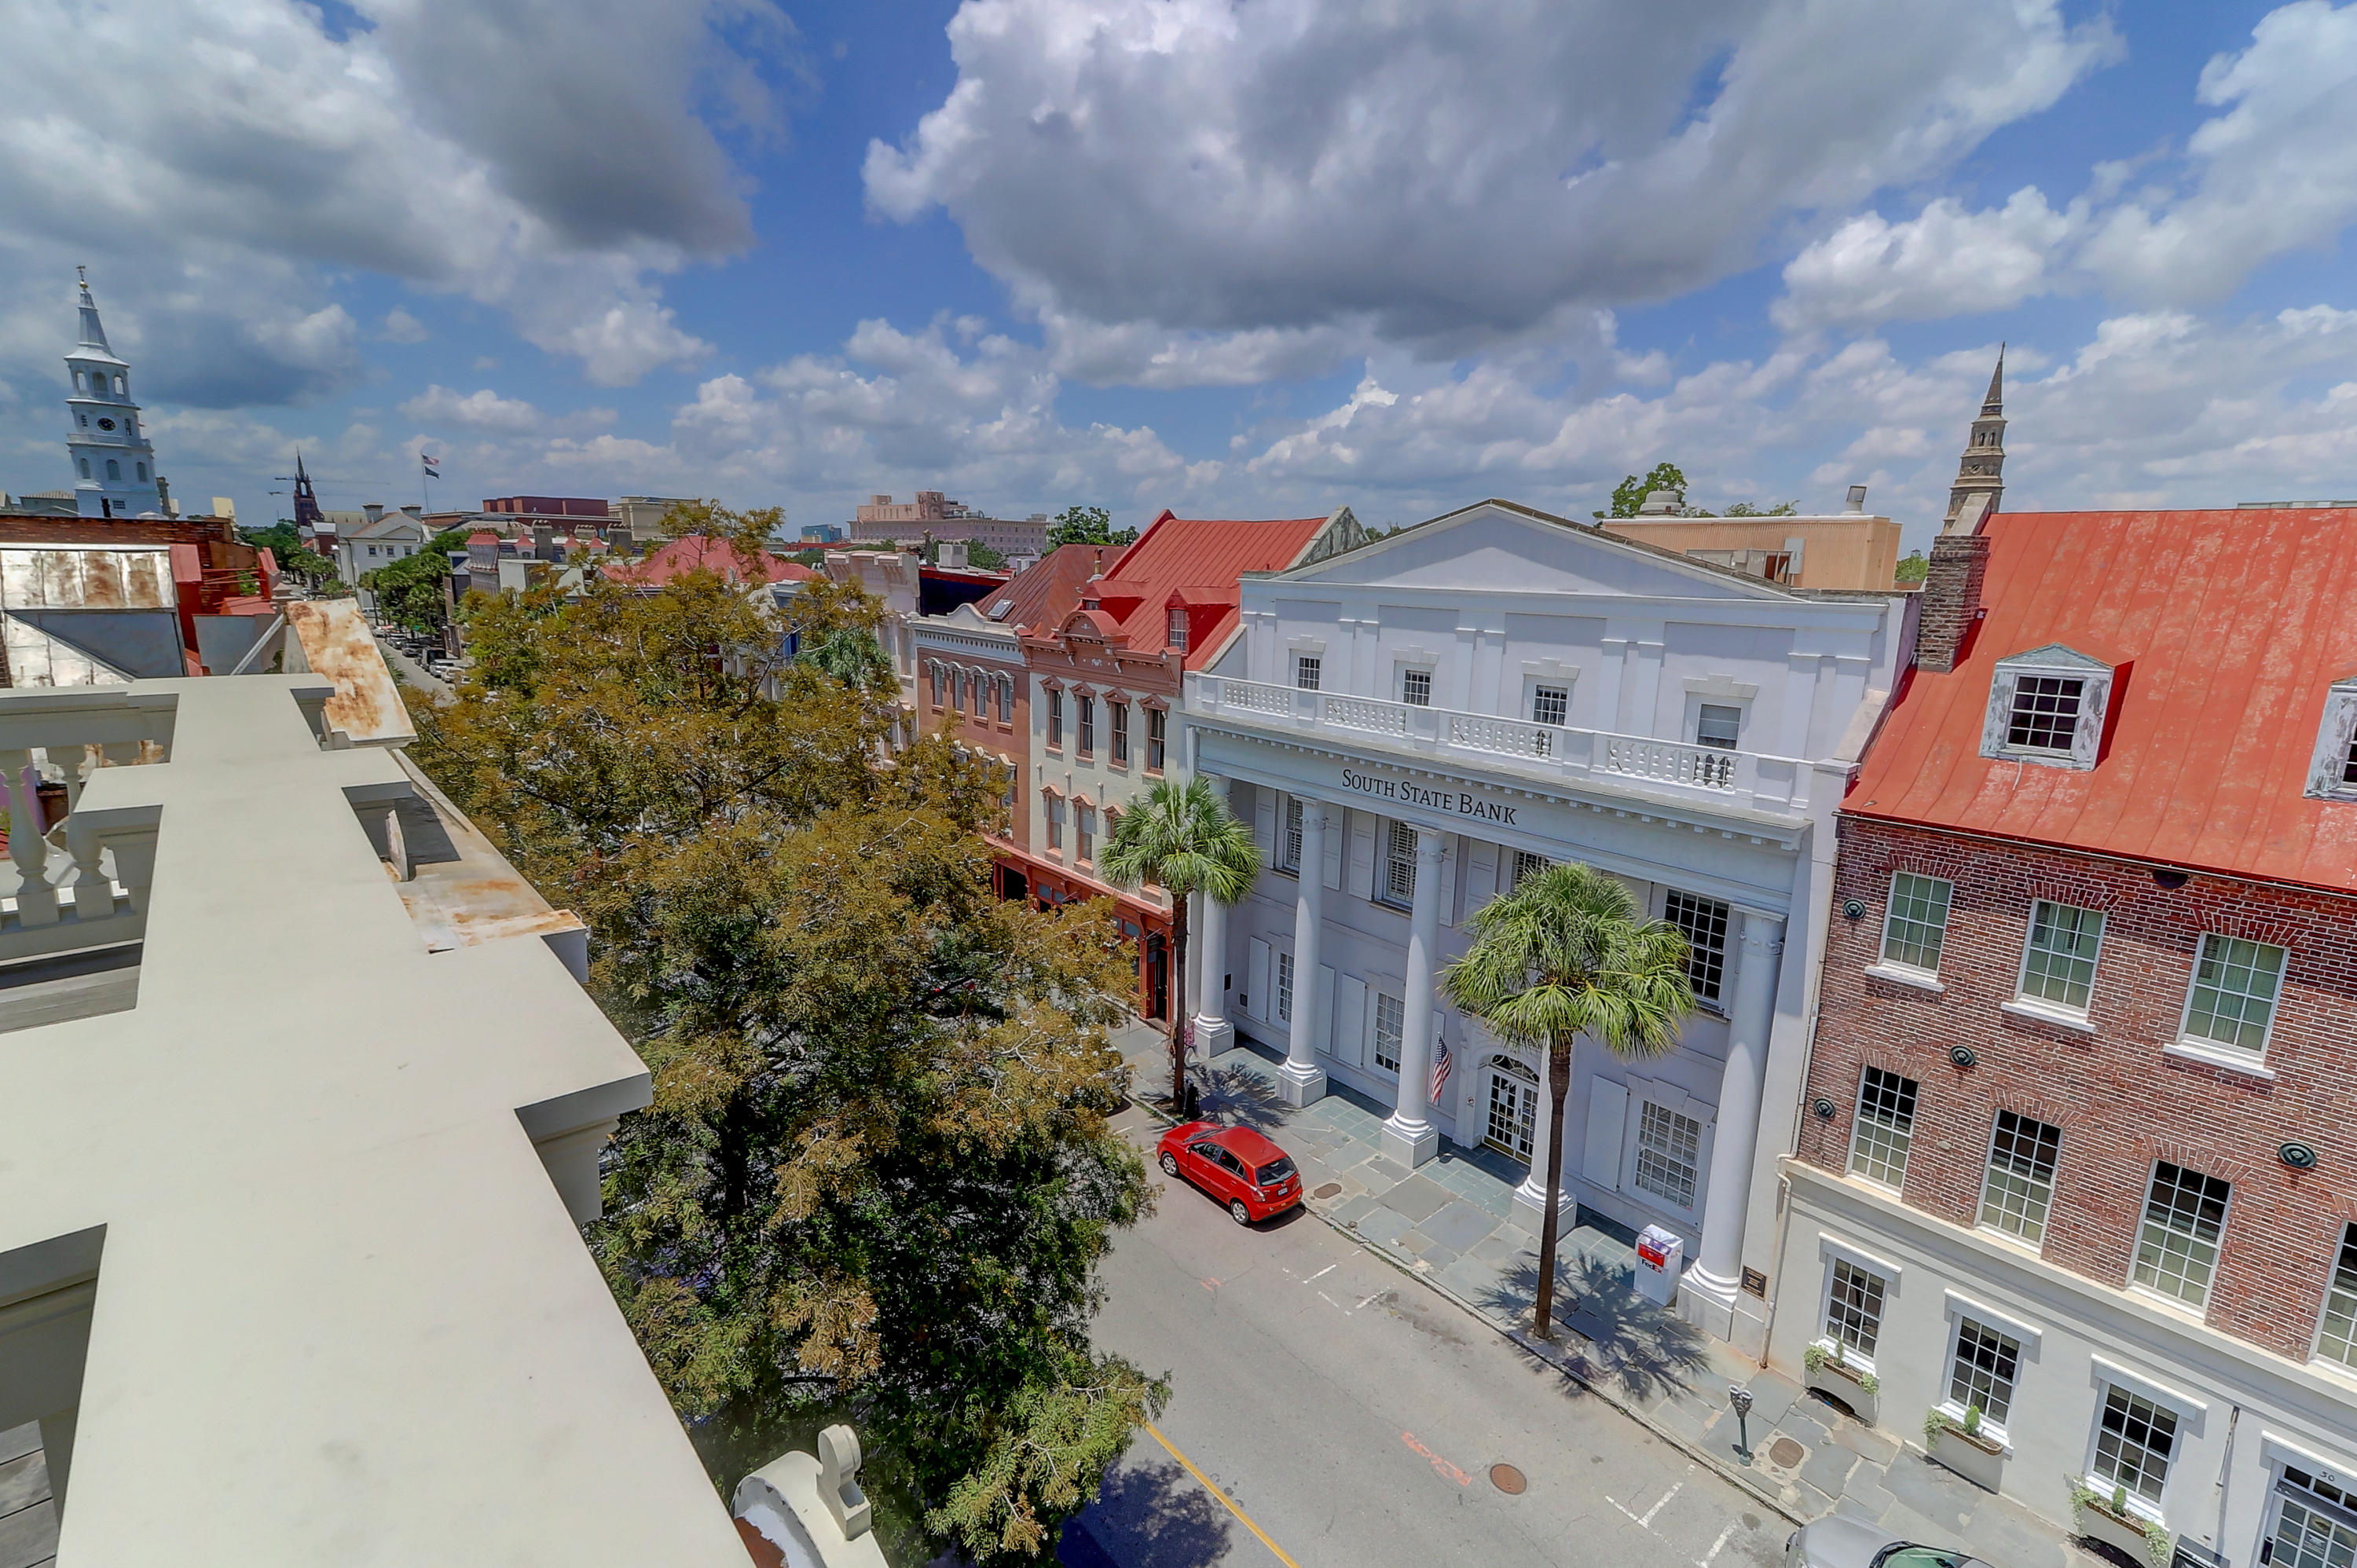 29 Broad Street UNIT A,B,C Charleston, SC 29401